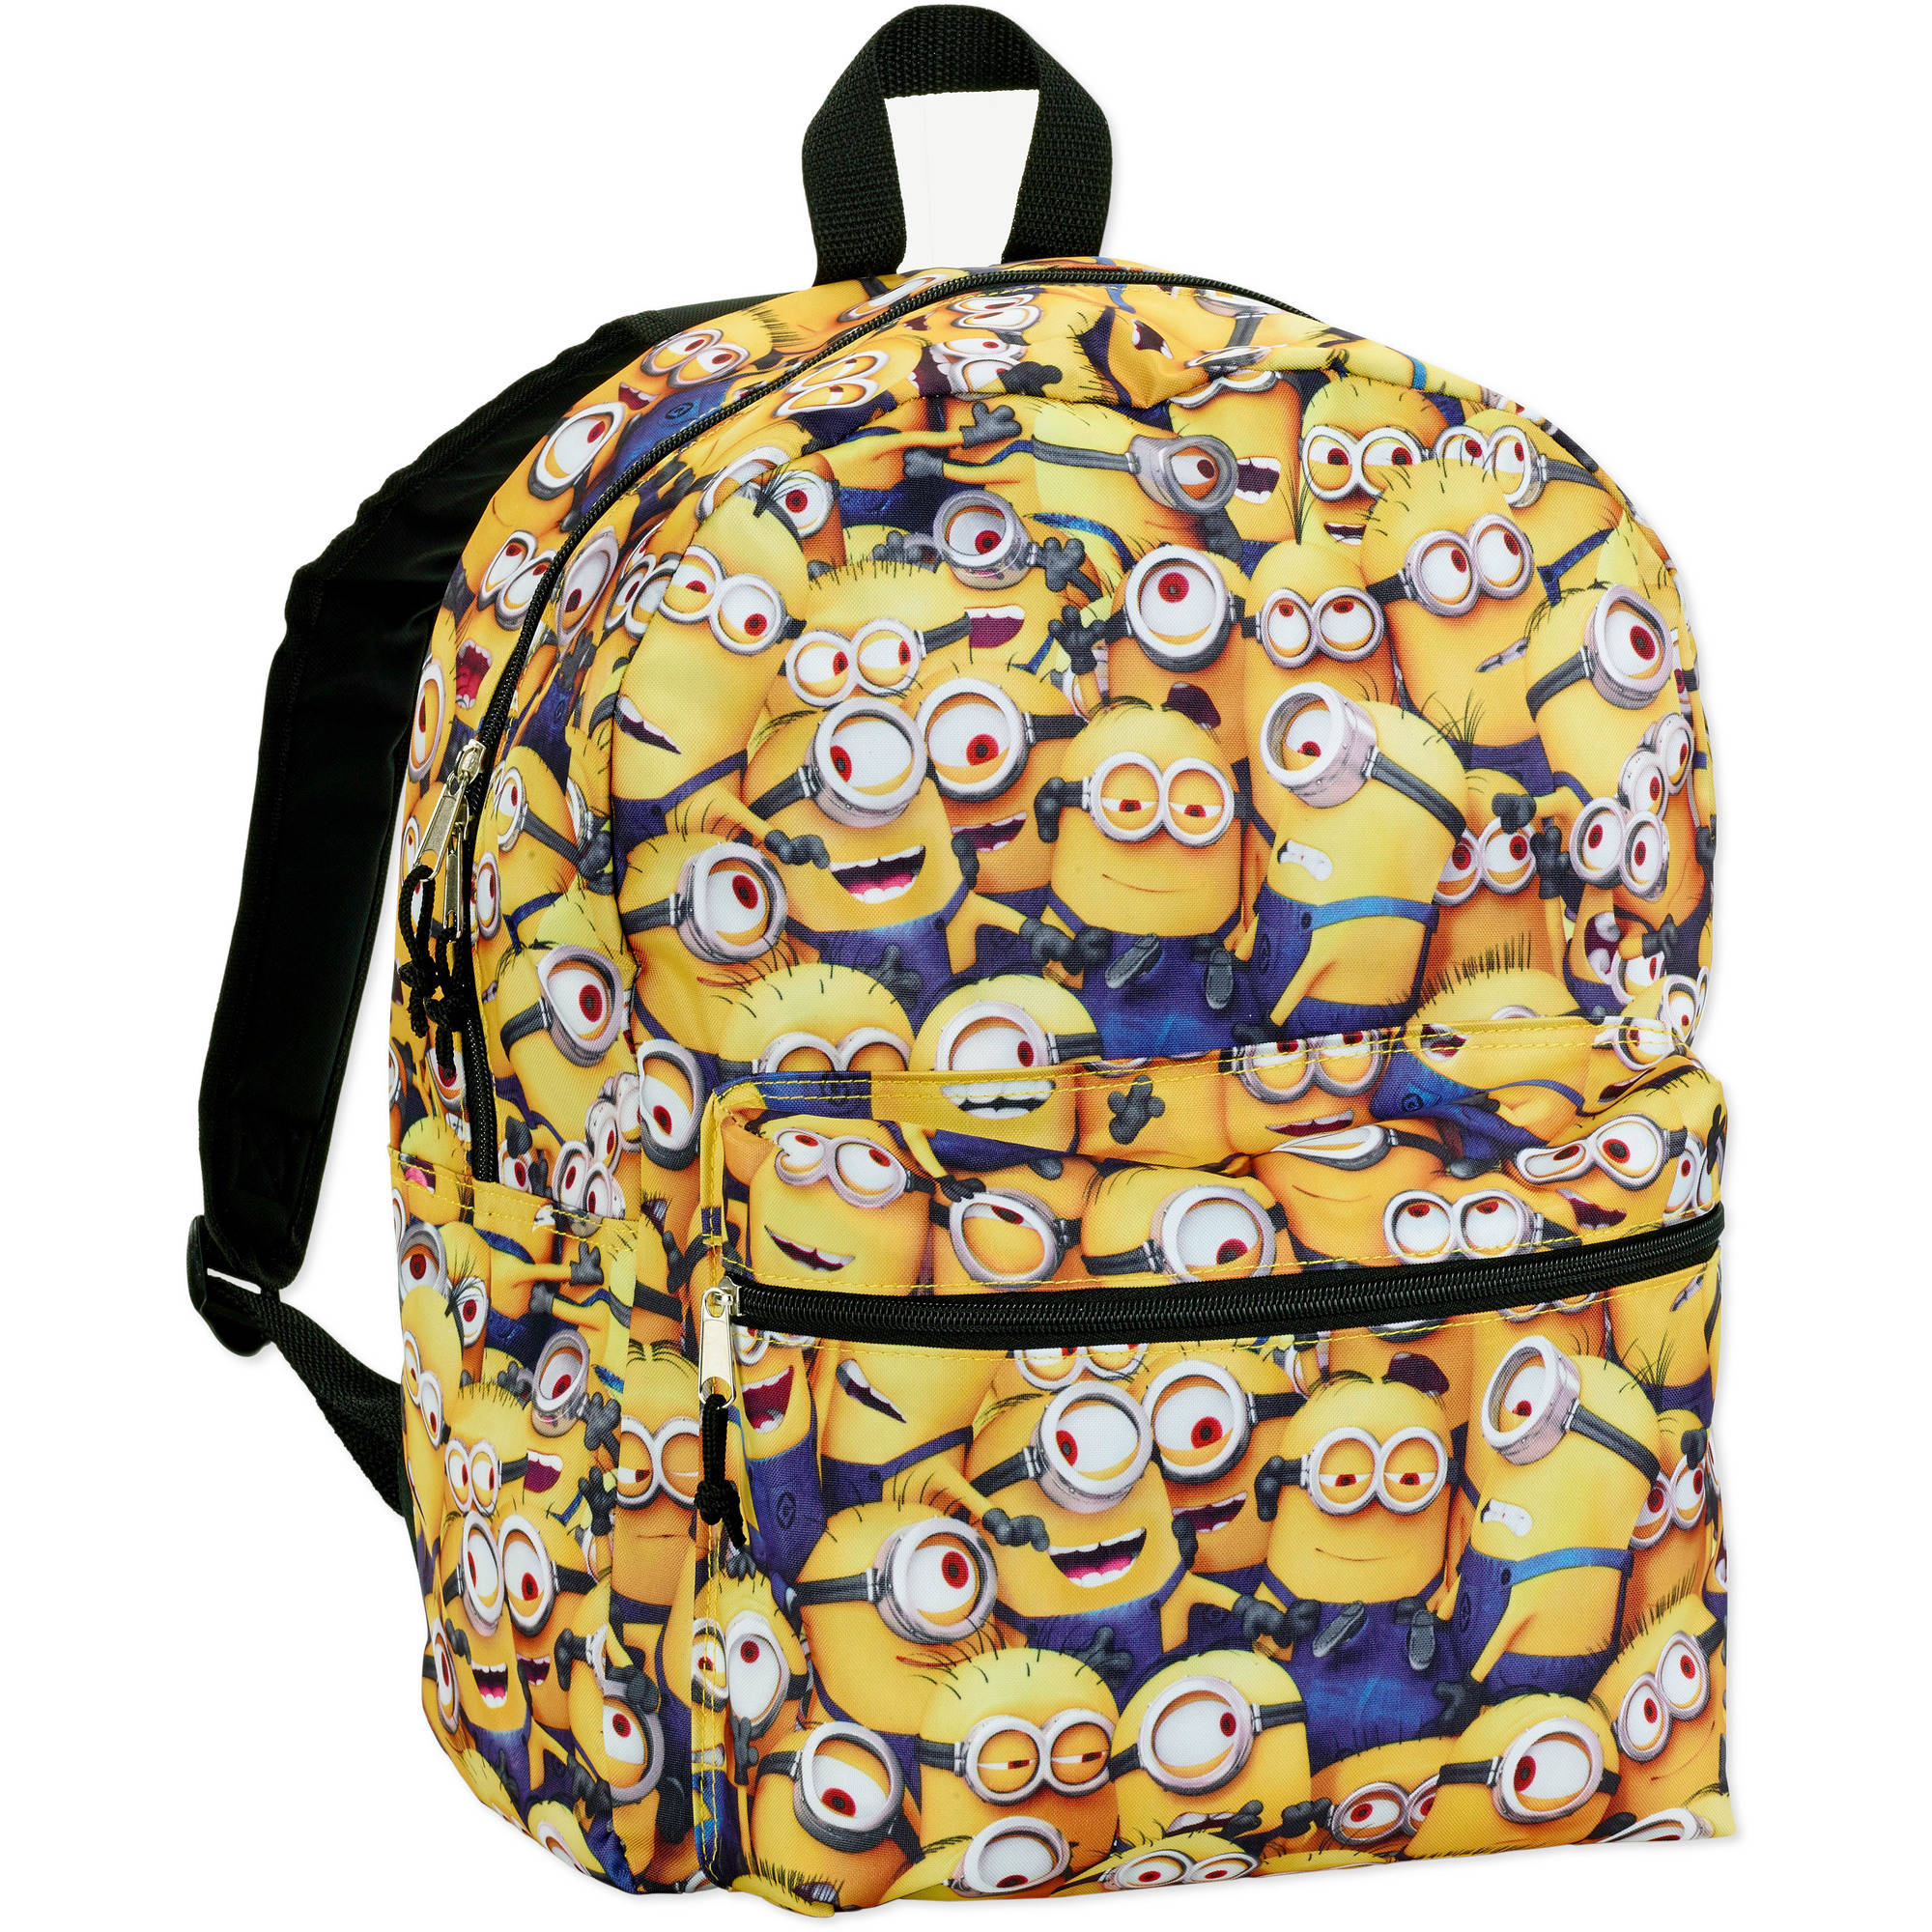 Despicable Me All Over Minions Kids' Backpack